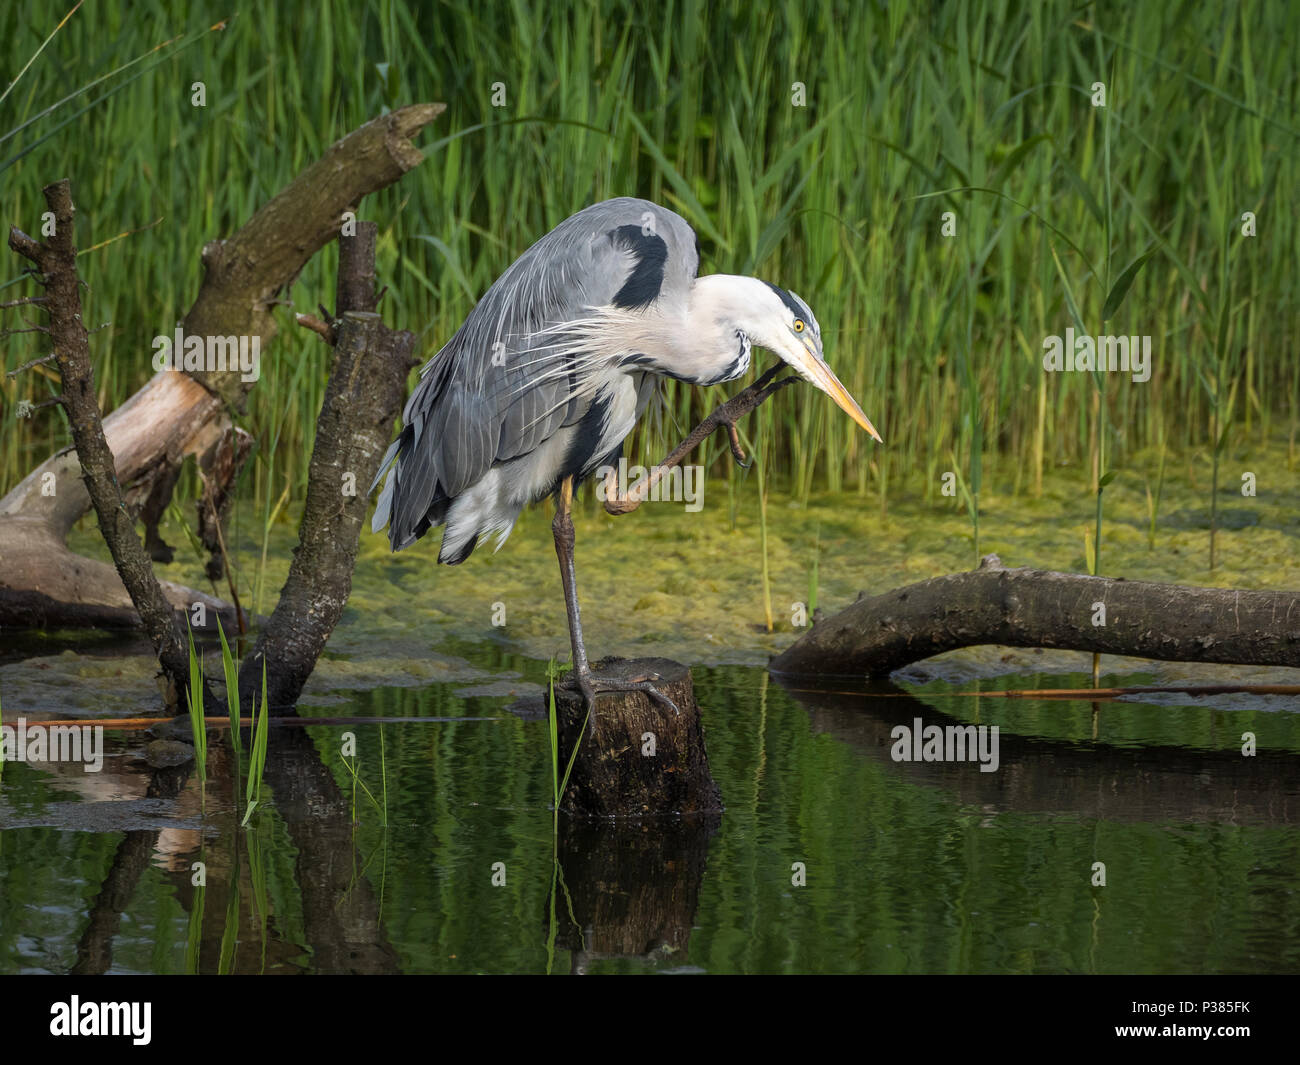 Grey Heron, Teifi Marshes, Wales Stock Photo